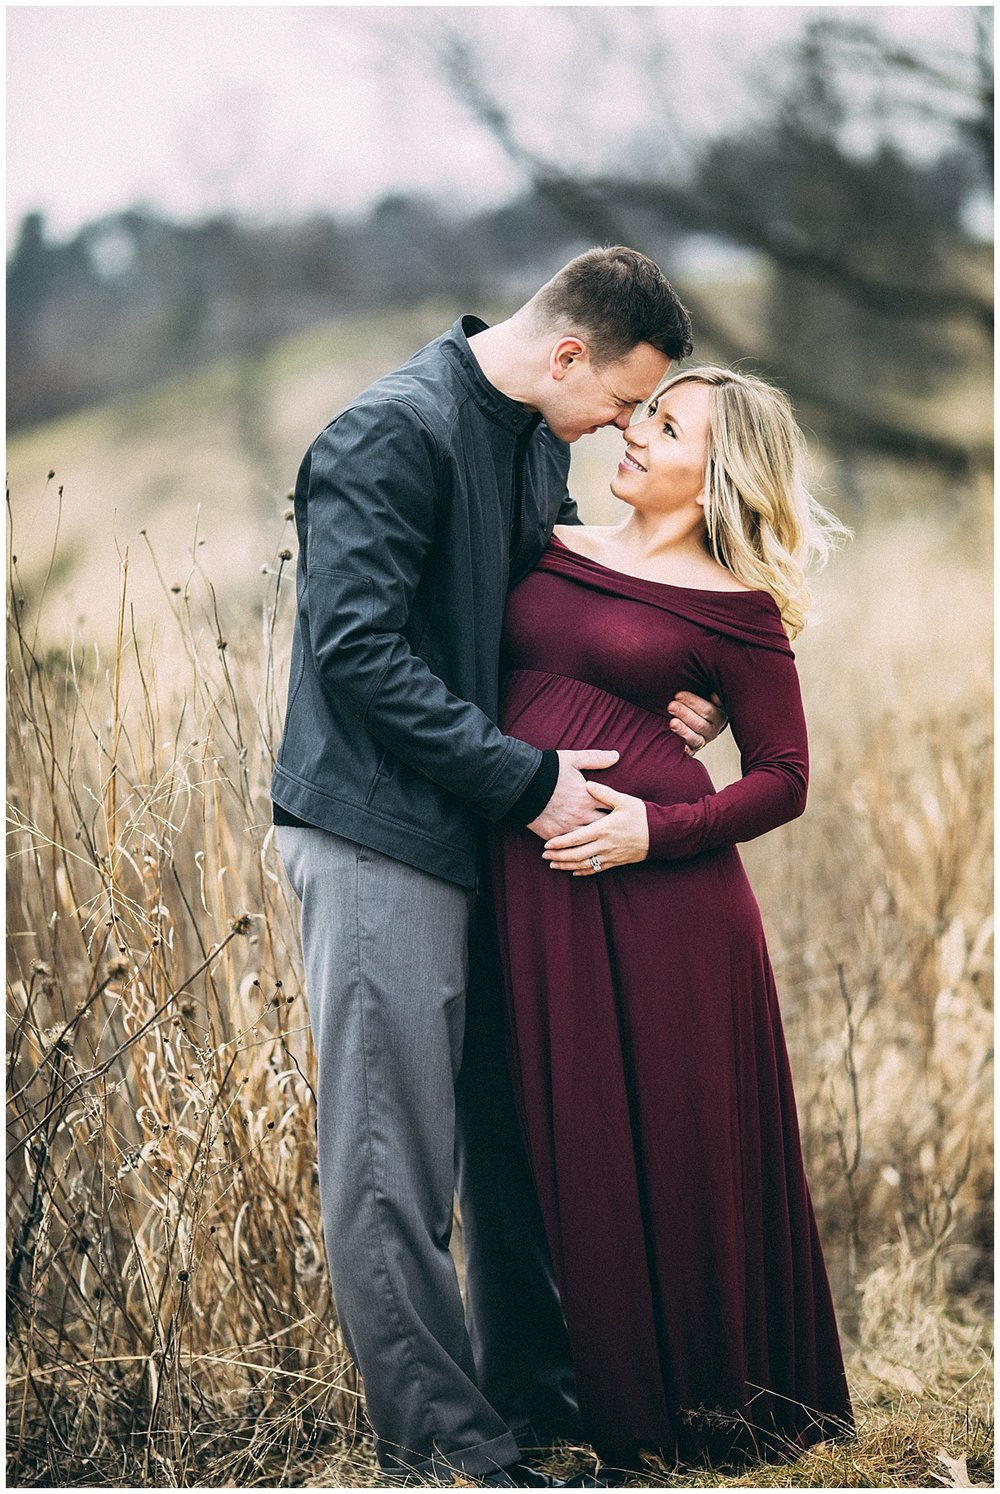 expecting parents kissing in the park | cleveland, OH maternity photographer